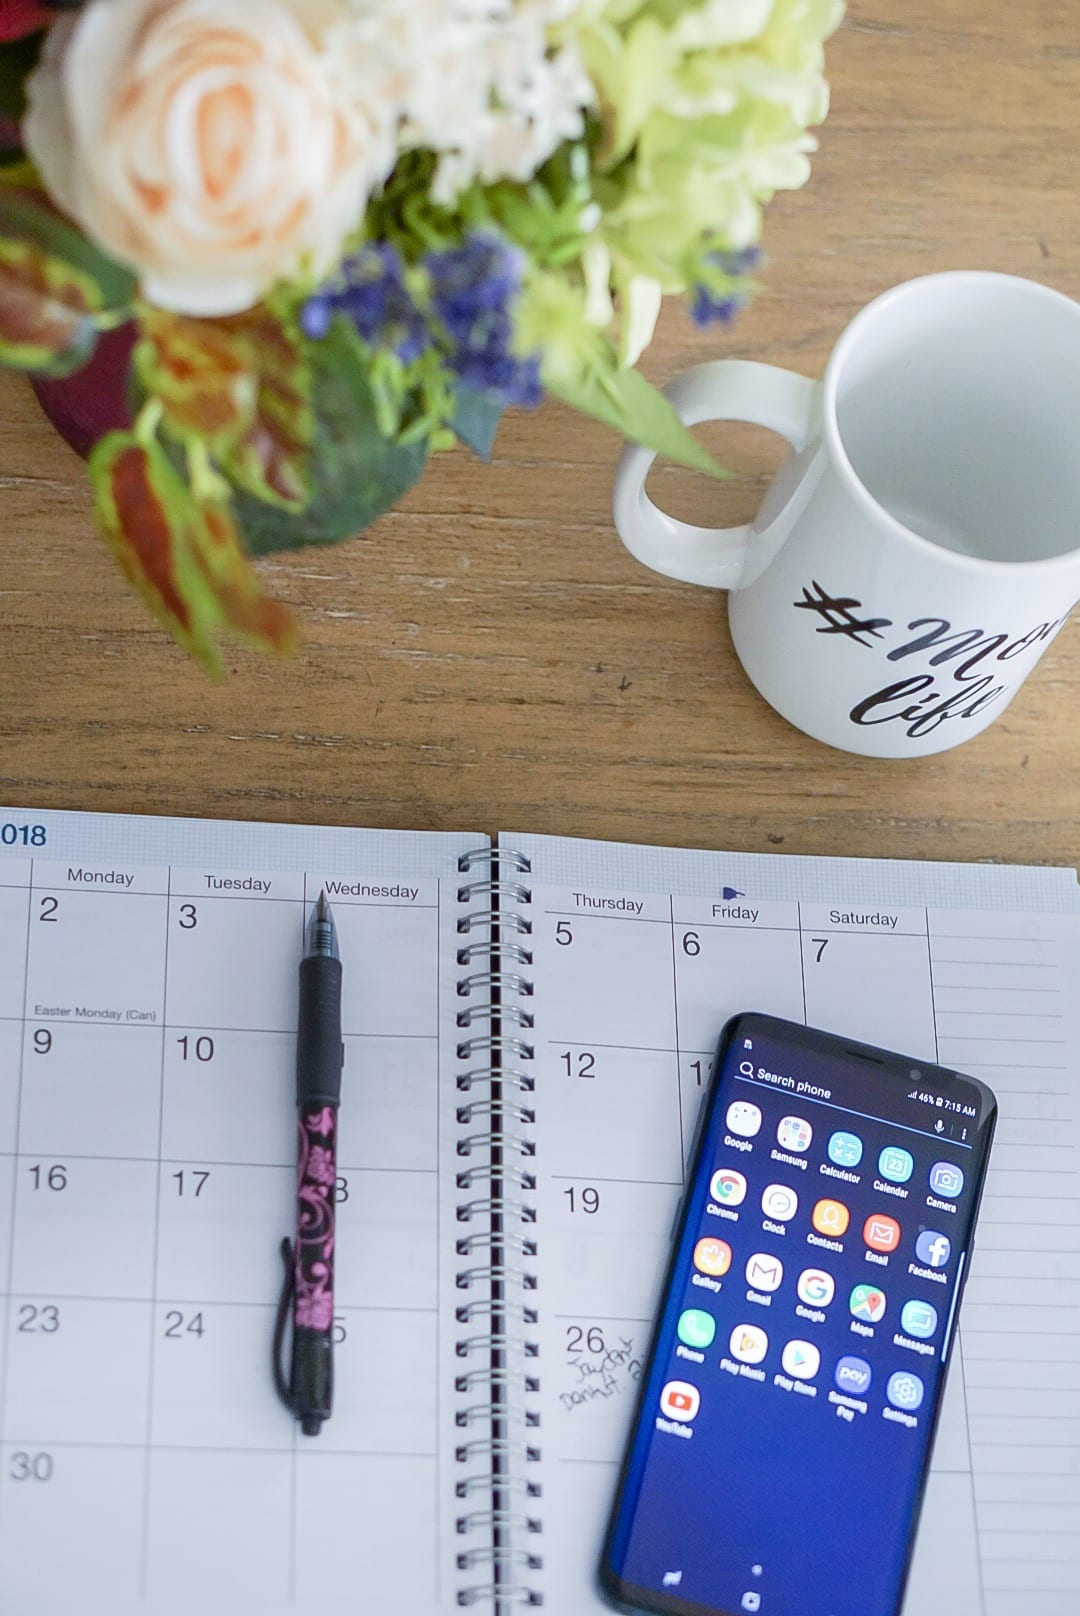 samsung galaxy 9+, target, mom life, family schedule, organizing tips